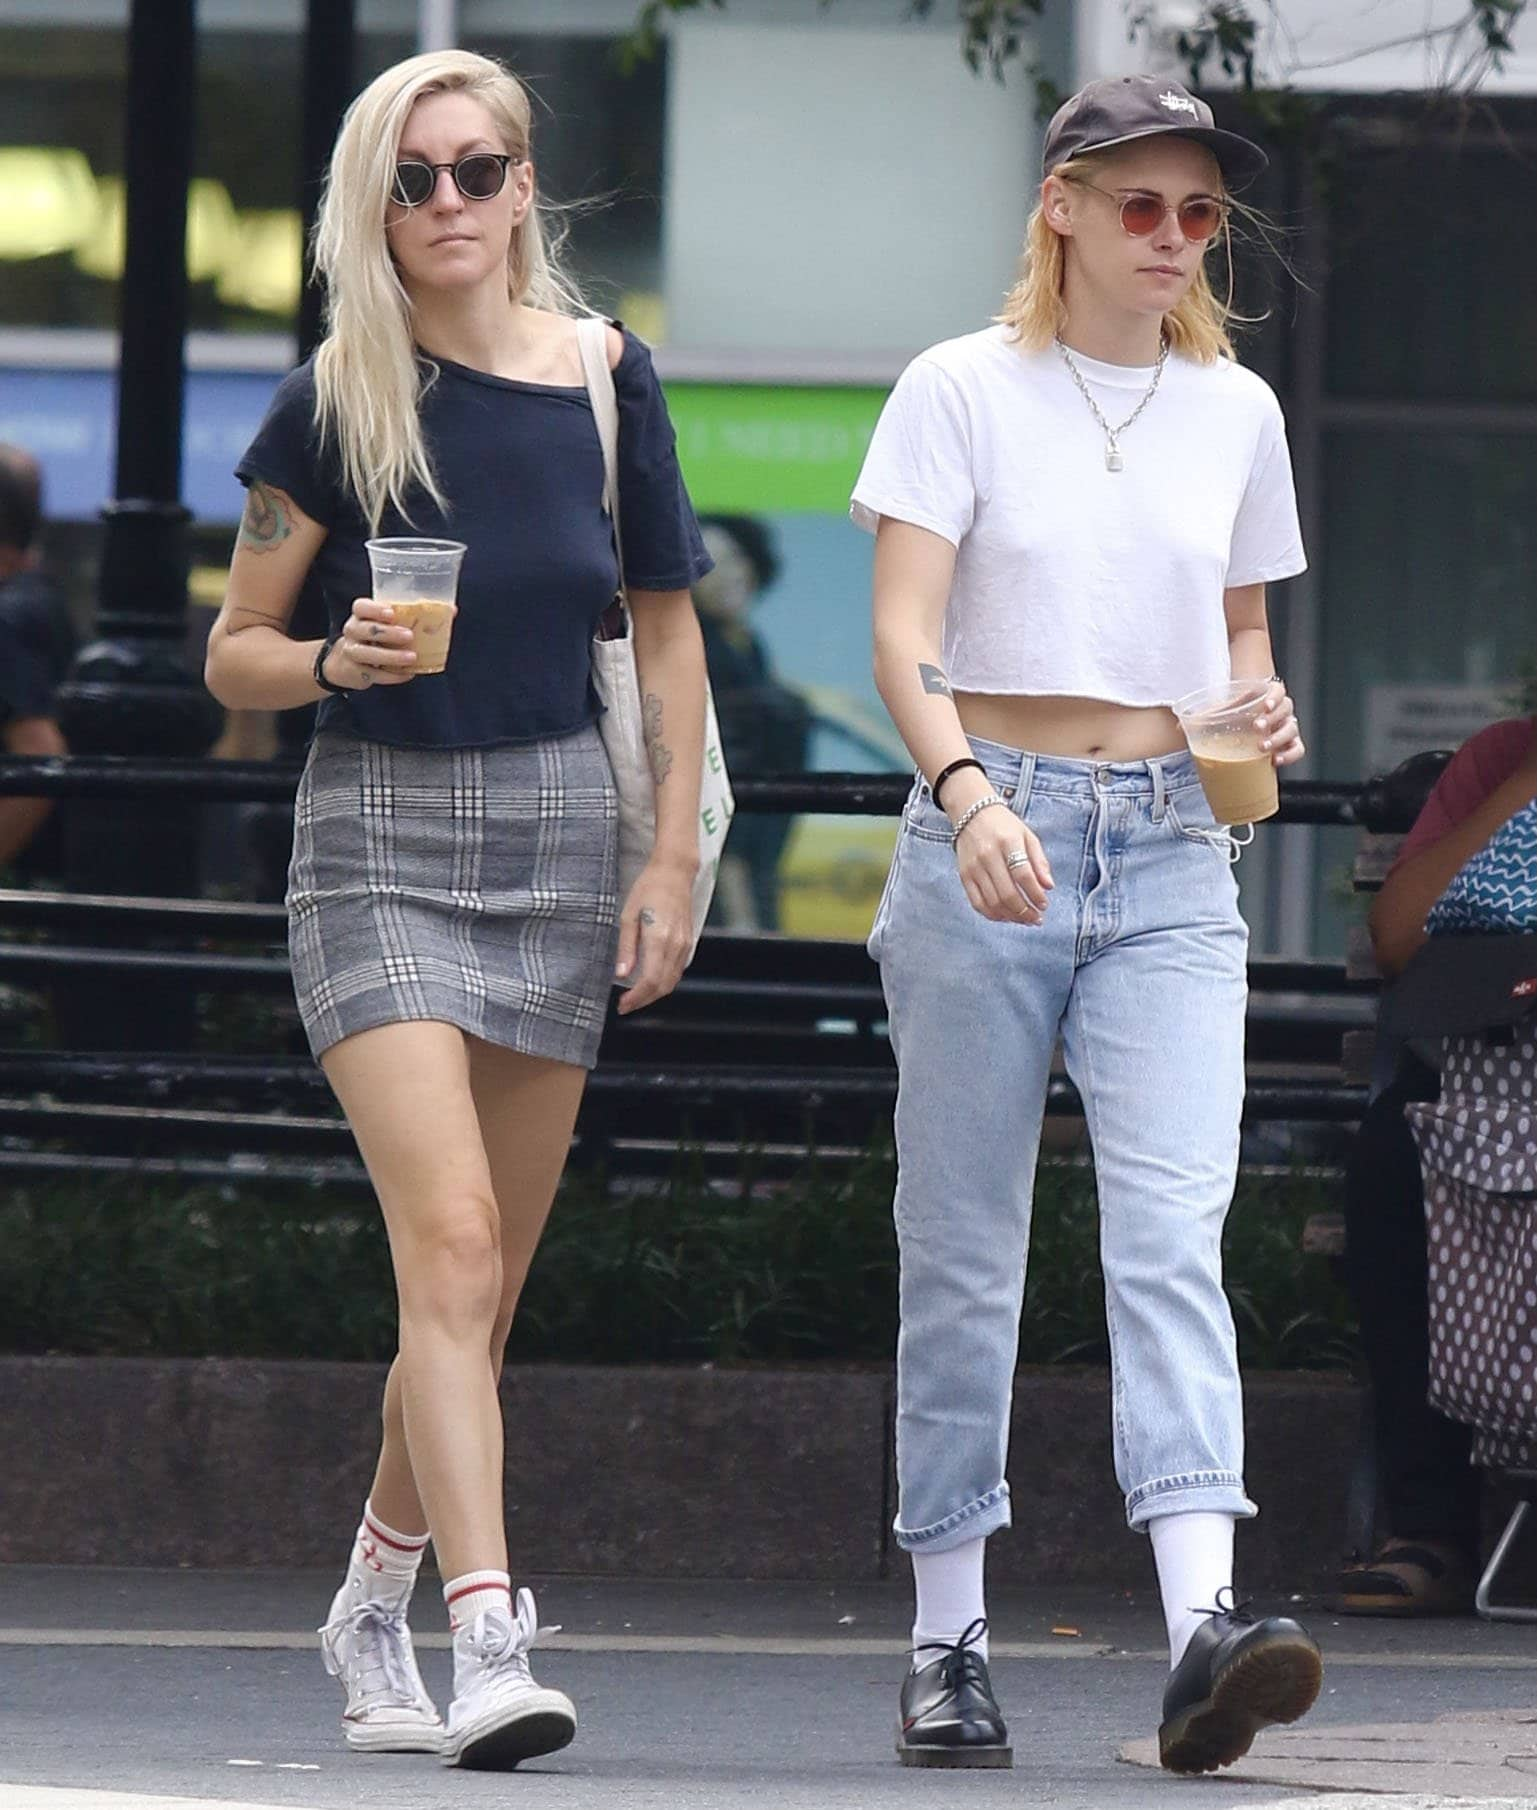 Kristen Stewart steps out with long-time girlfriend Dylan Meyer for a coffee run in Manhattan Union Square Park on September 11, 2021